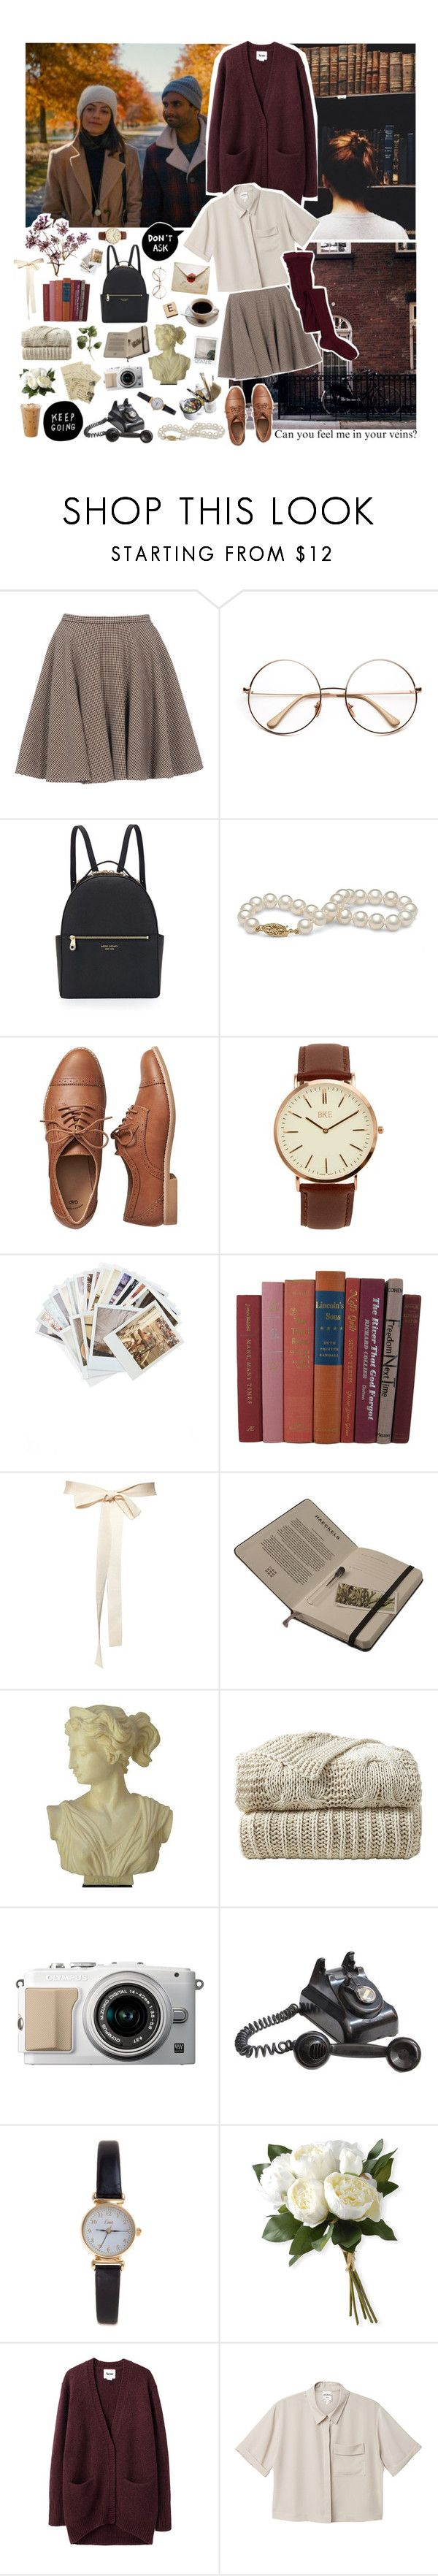 """""""master of none"""" by emma-dreams ❤ liked on Polyvore featuring McQ by Alexander McQueen, Henri Bendel, Gap, BKE, Hasbro, Chronicle Books, Haeckels, Mason's, Limit and National Tree Company"""